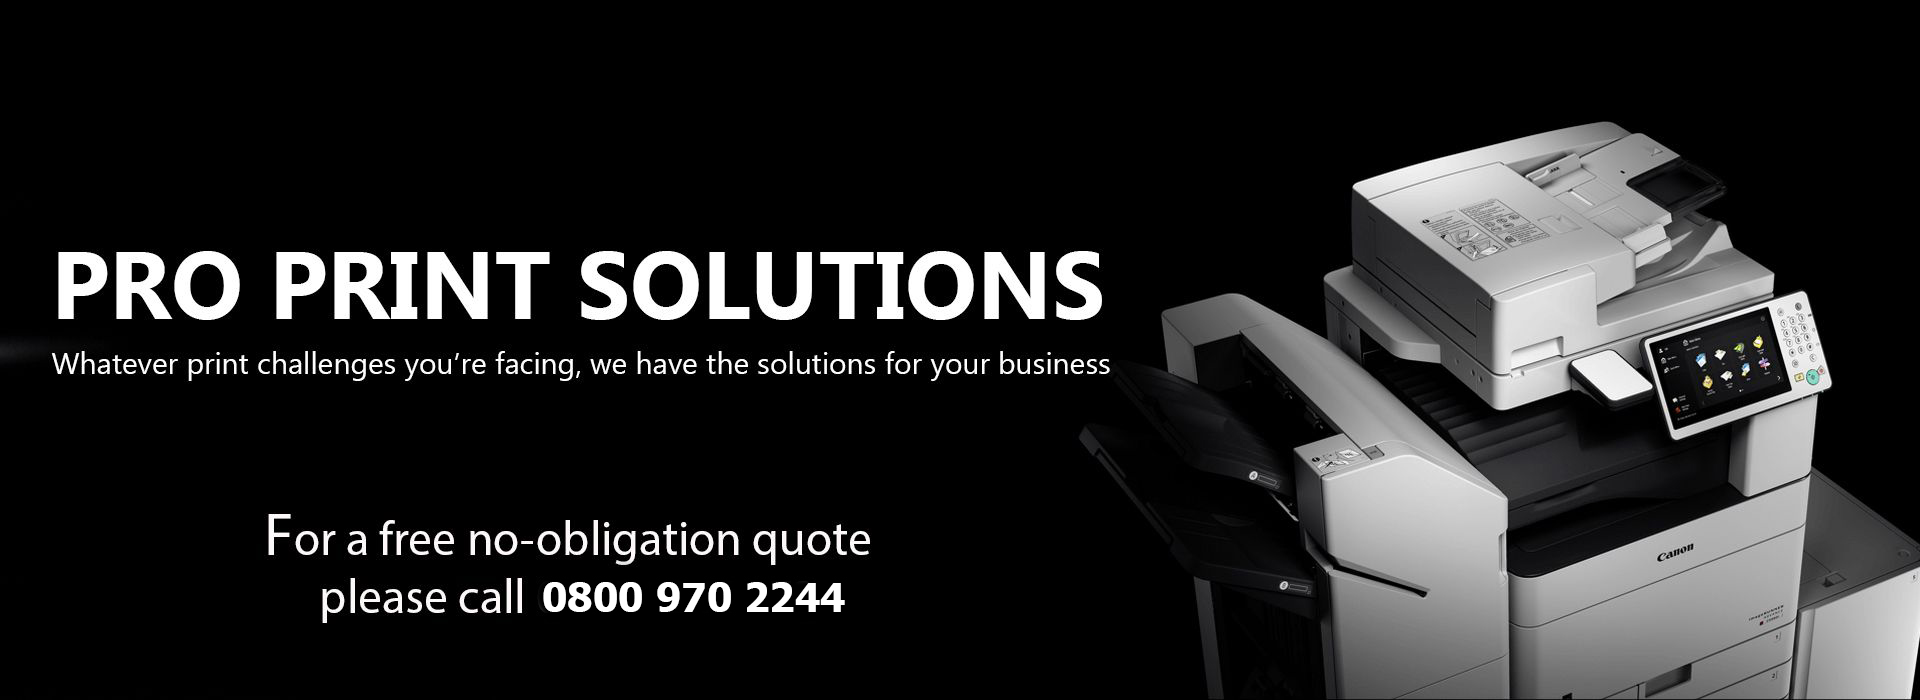 printer supplier wigan - lease printer wigan